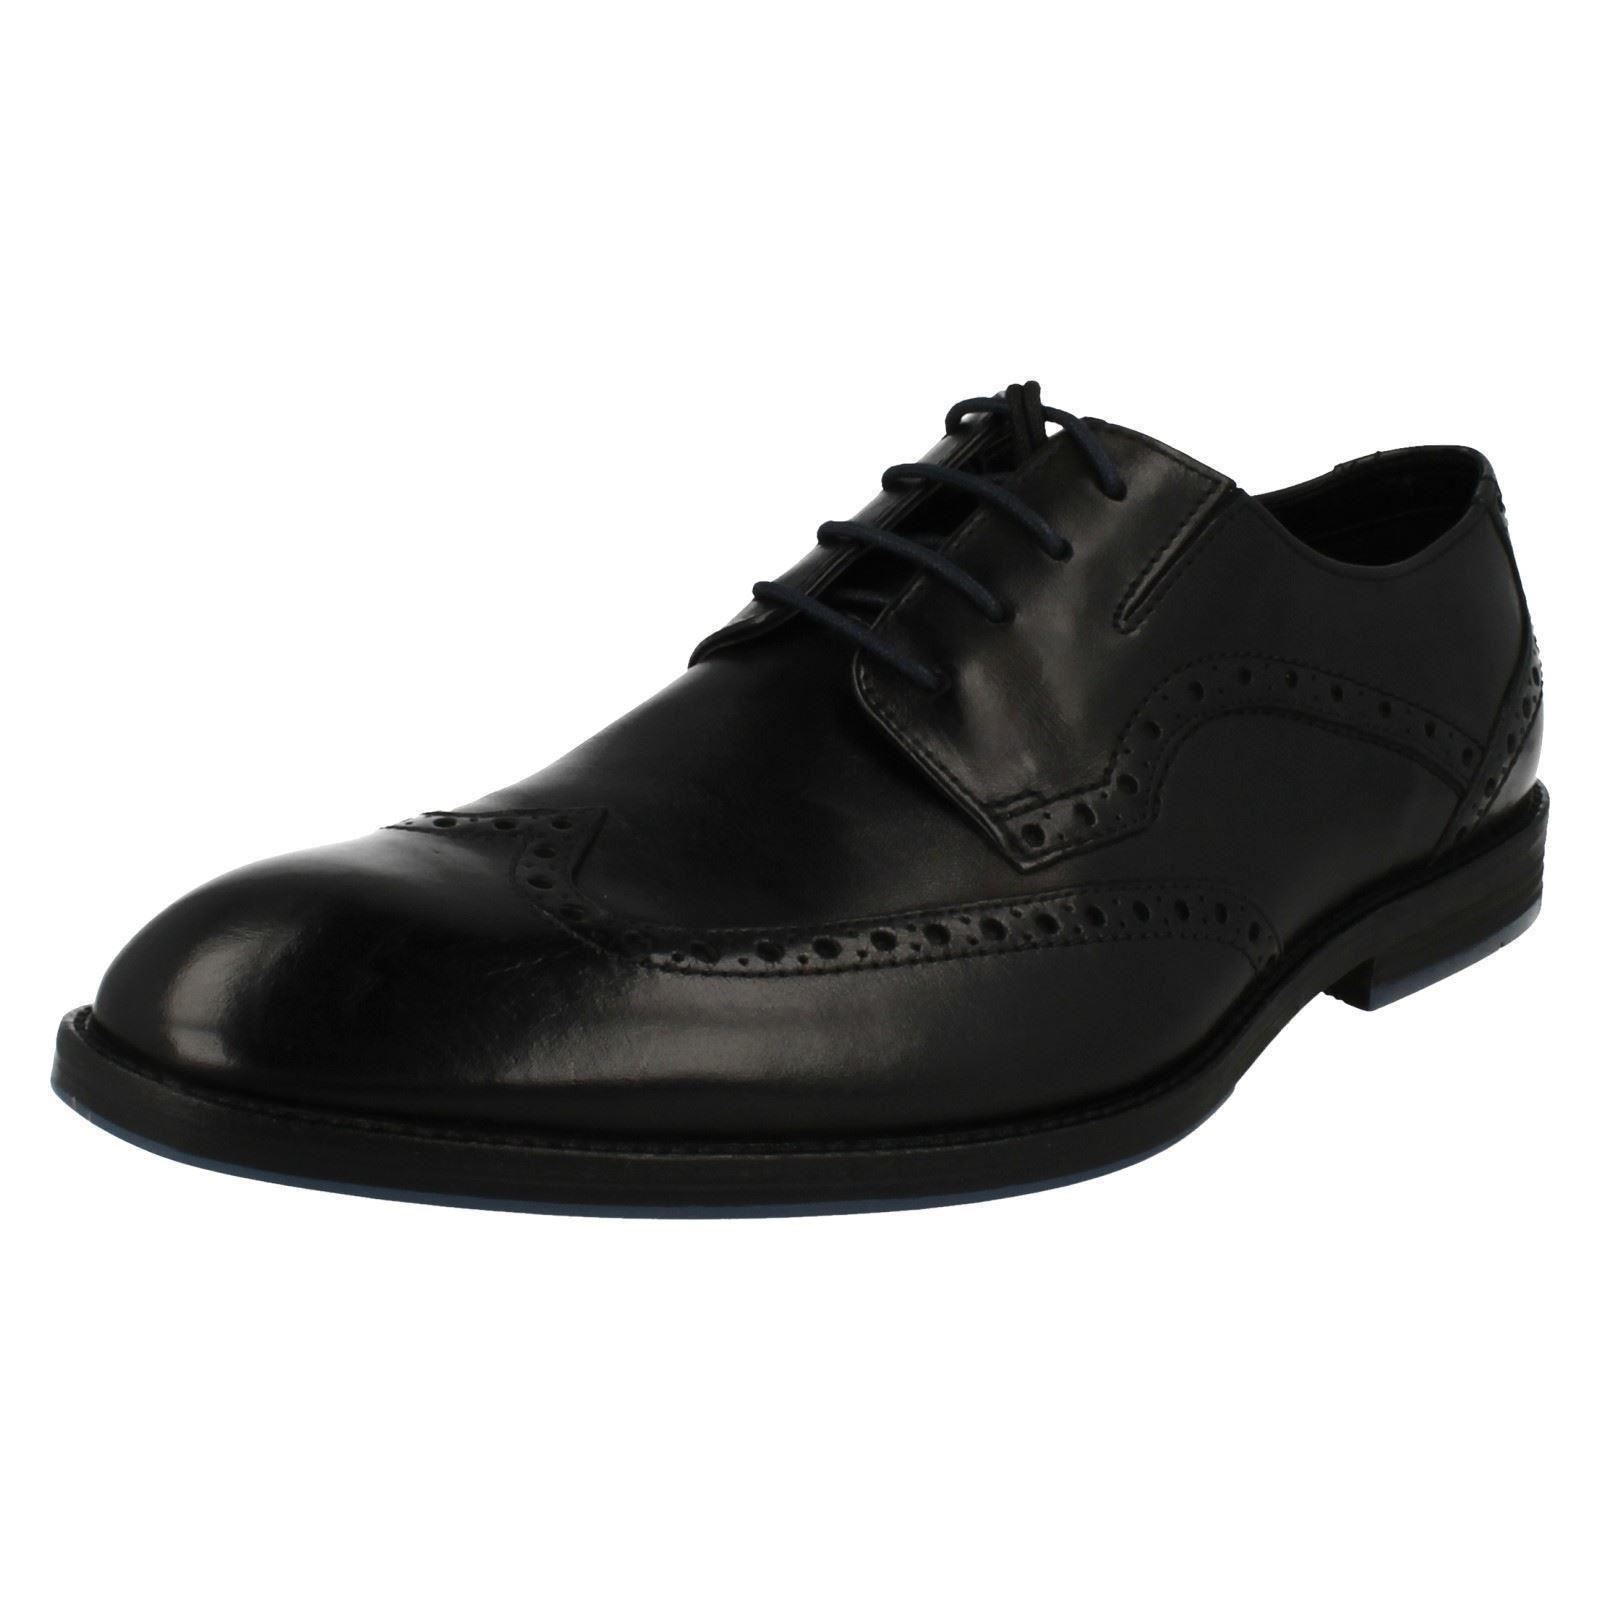 Men's Clarks - Formal Lace Up Brogue Schuhes The Style - Clarks  Prangley Limit f06993